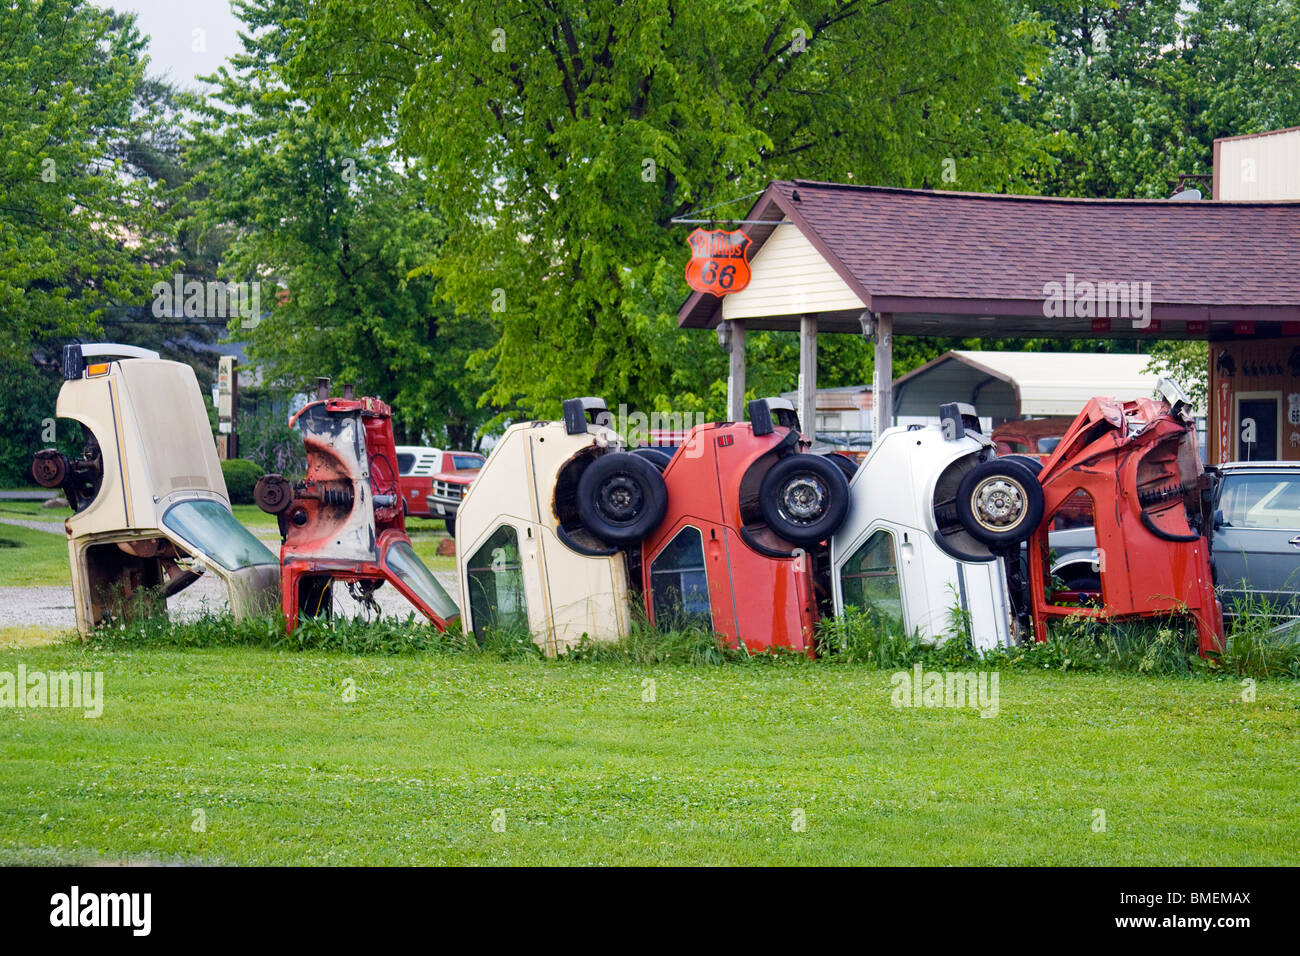 Henry's Ra66it Ranch on old Route 66 in Staunton Illinois Stock Photo